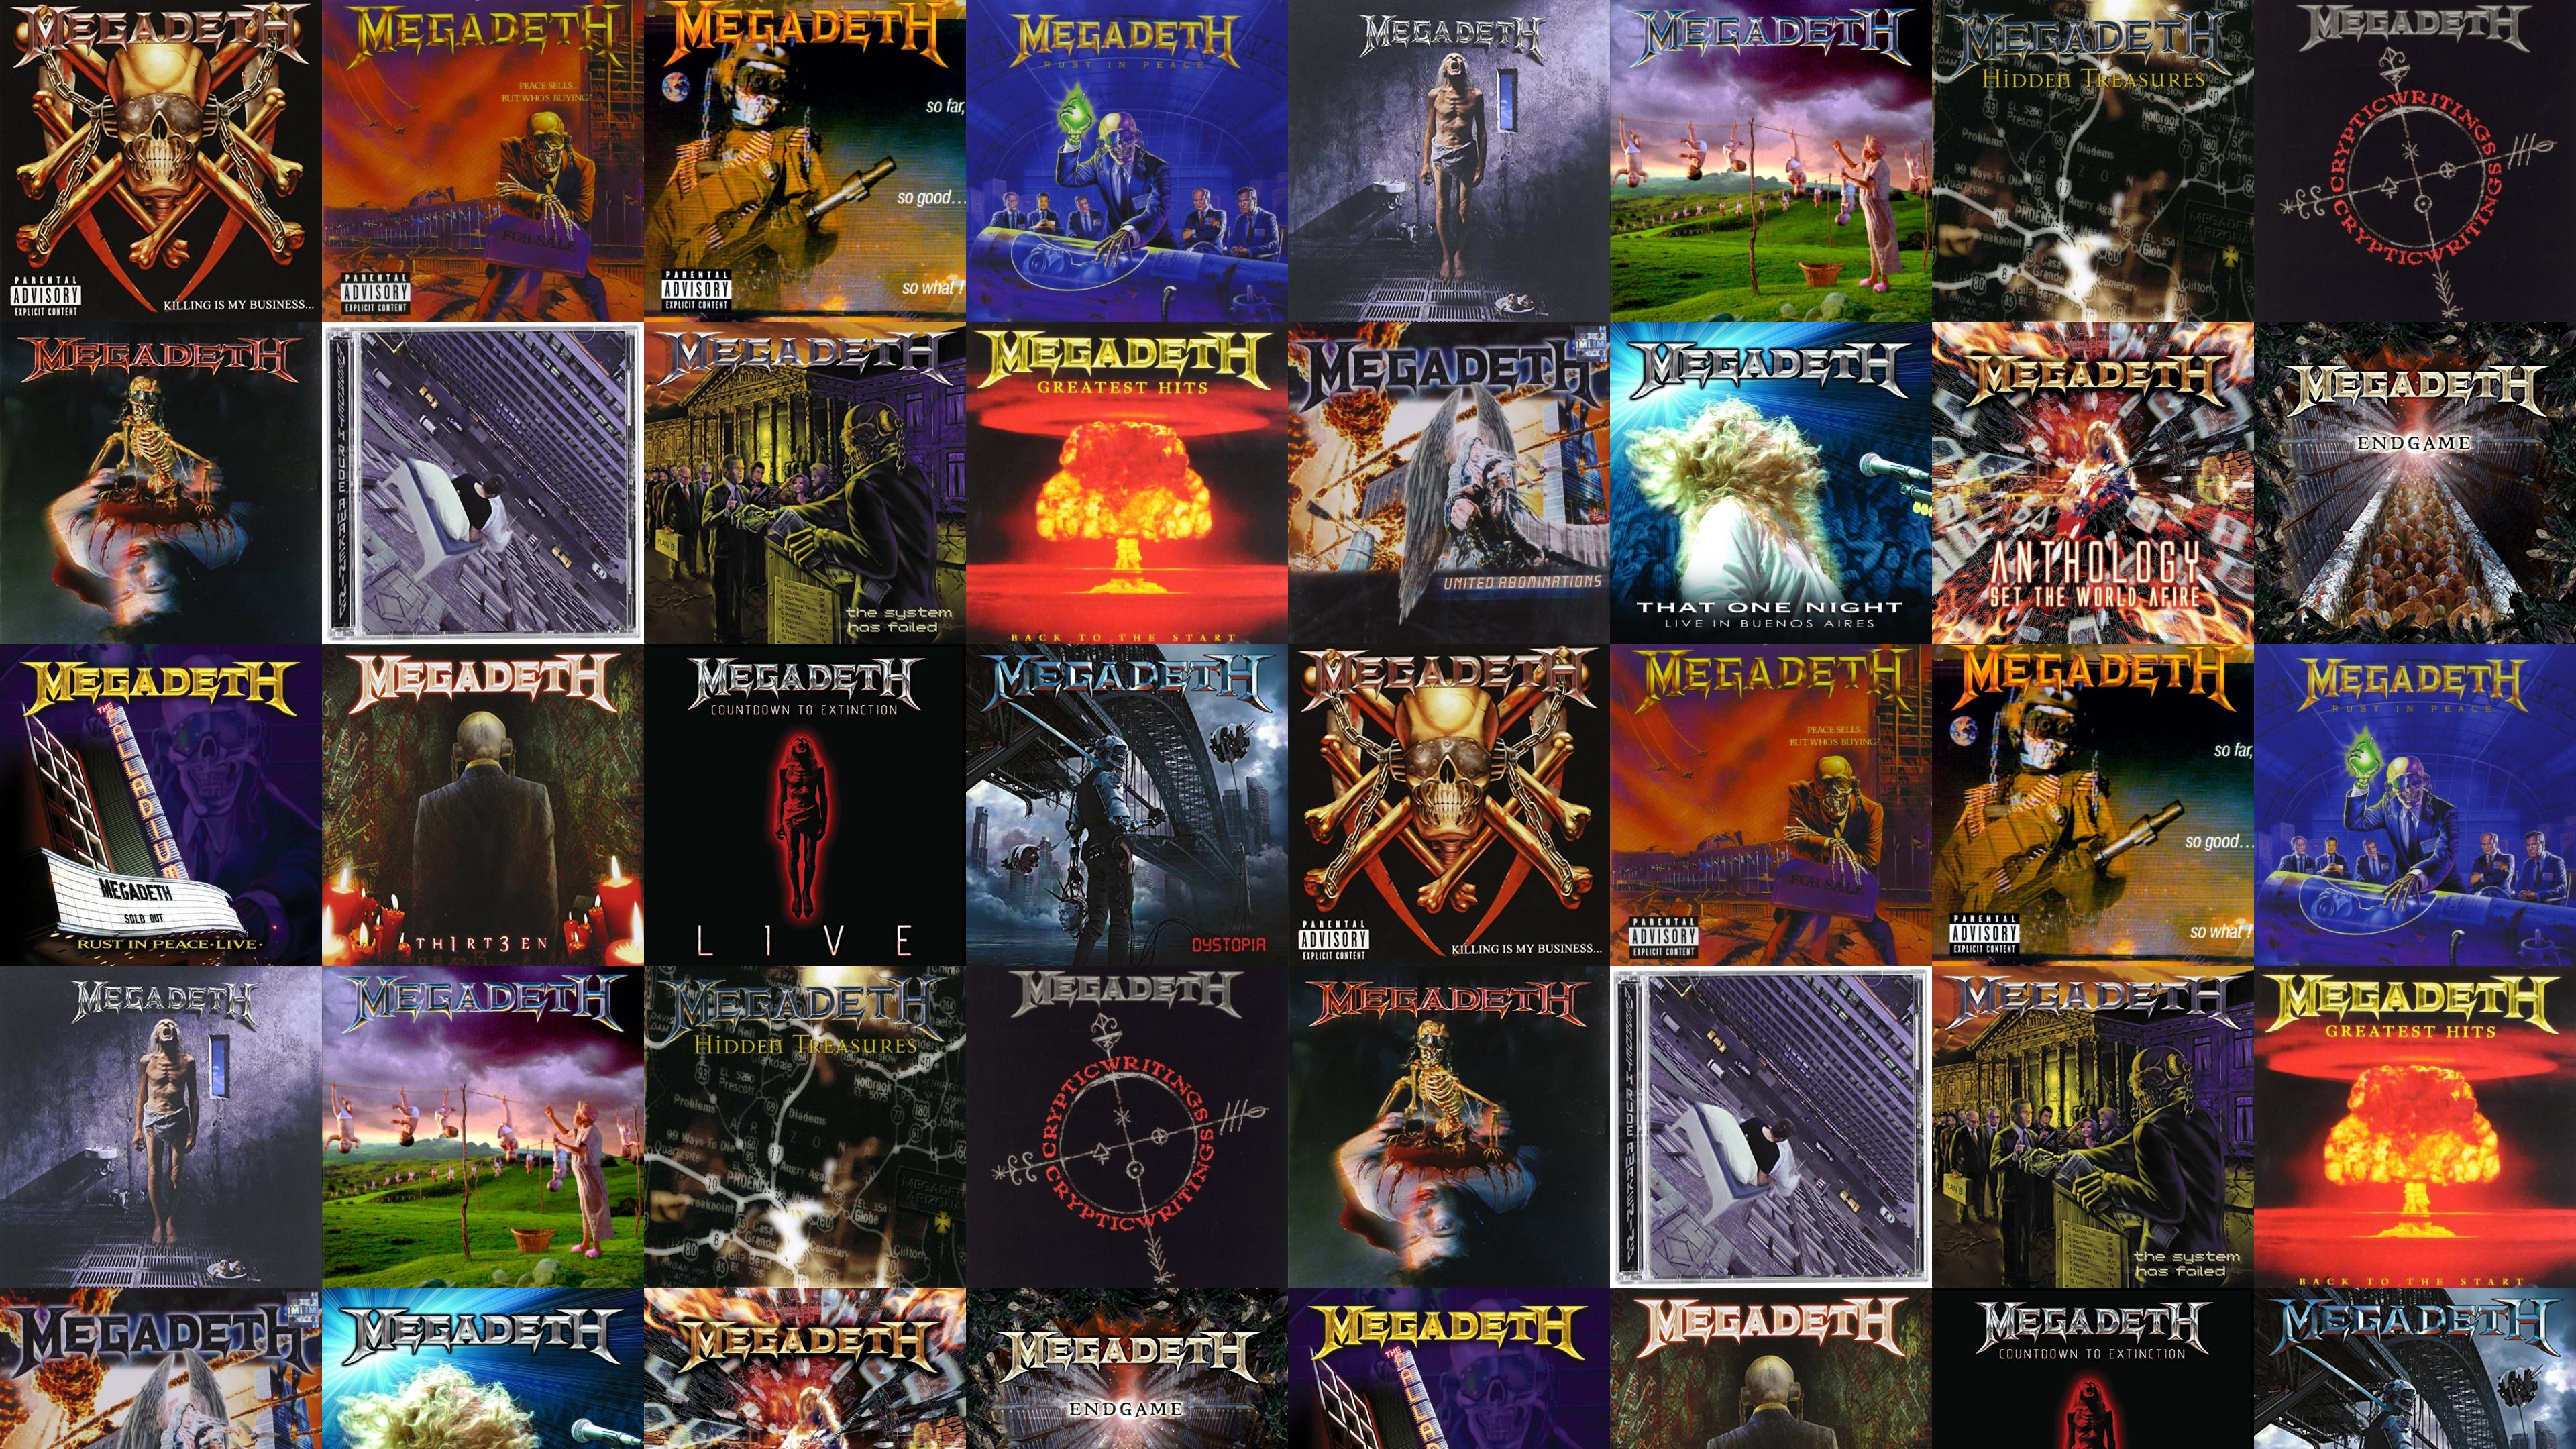 Megadeth Killing My Business And Business Good Peace Wallpaper